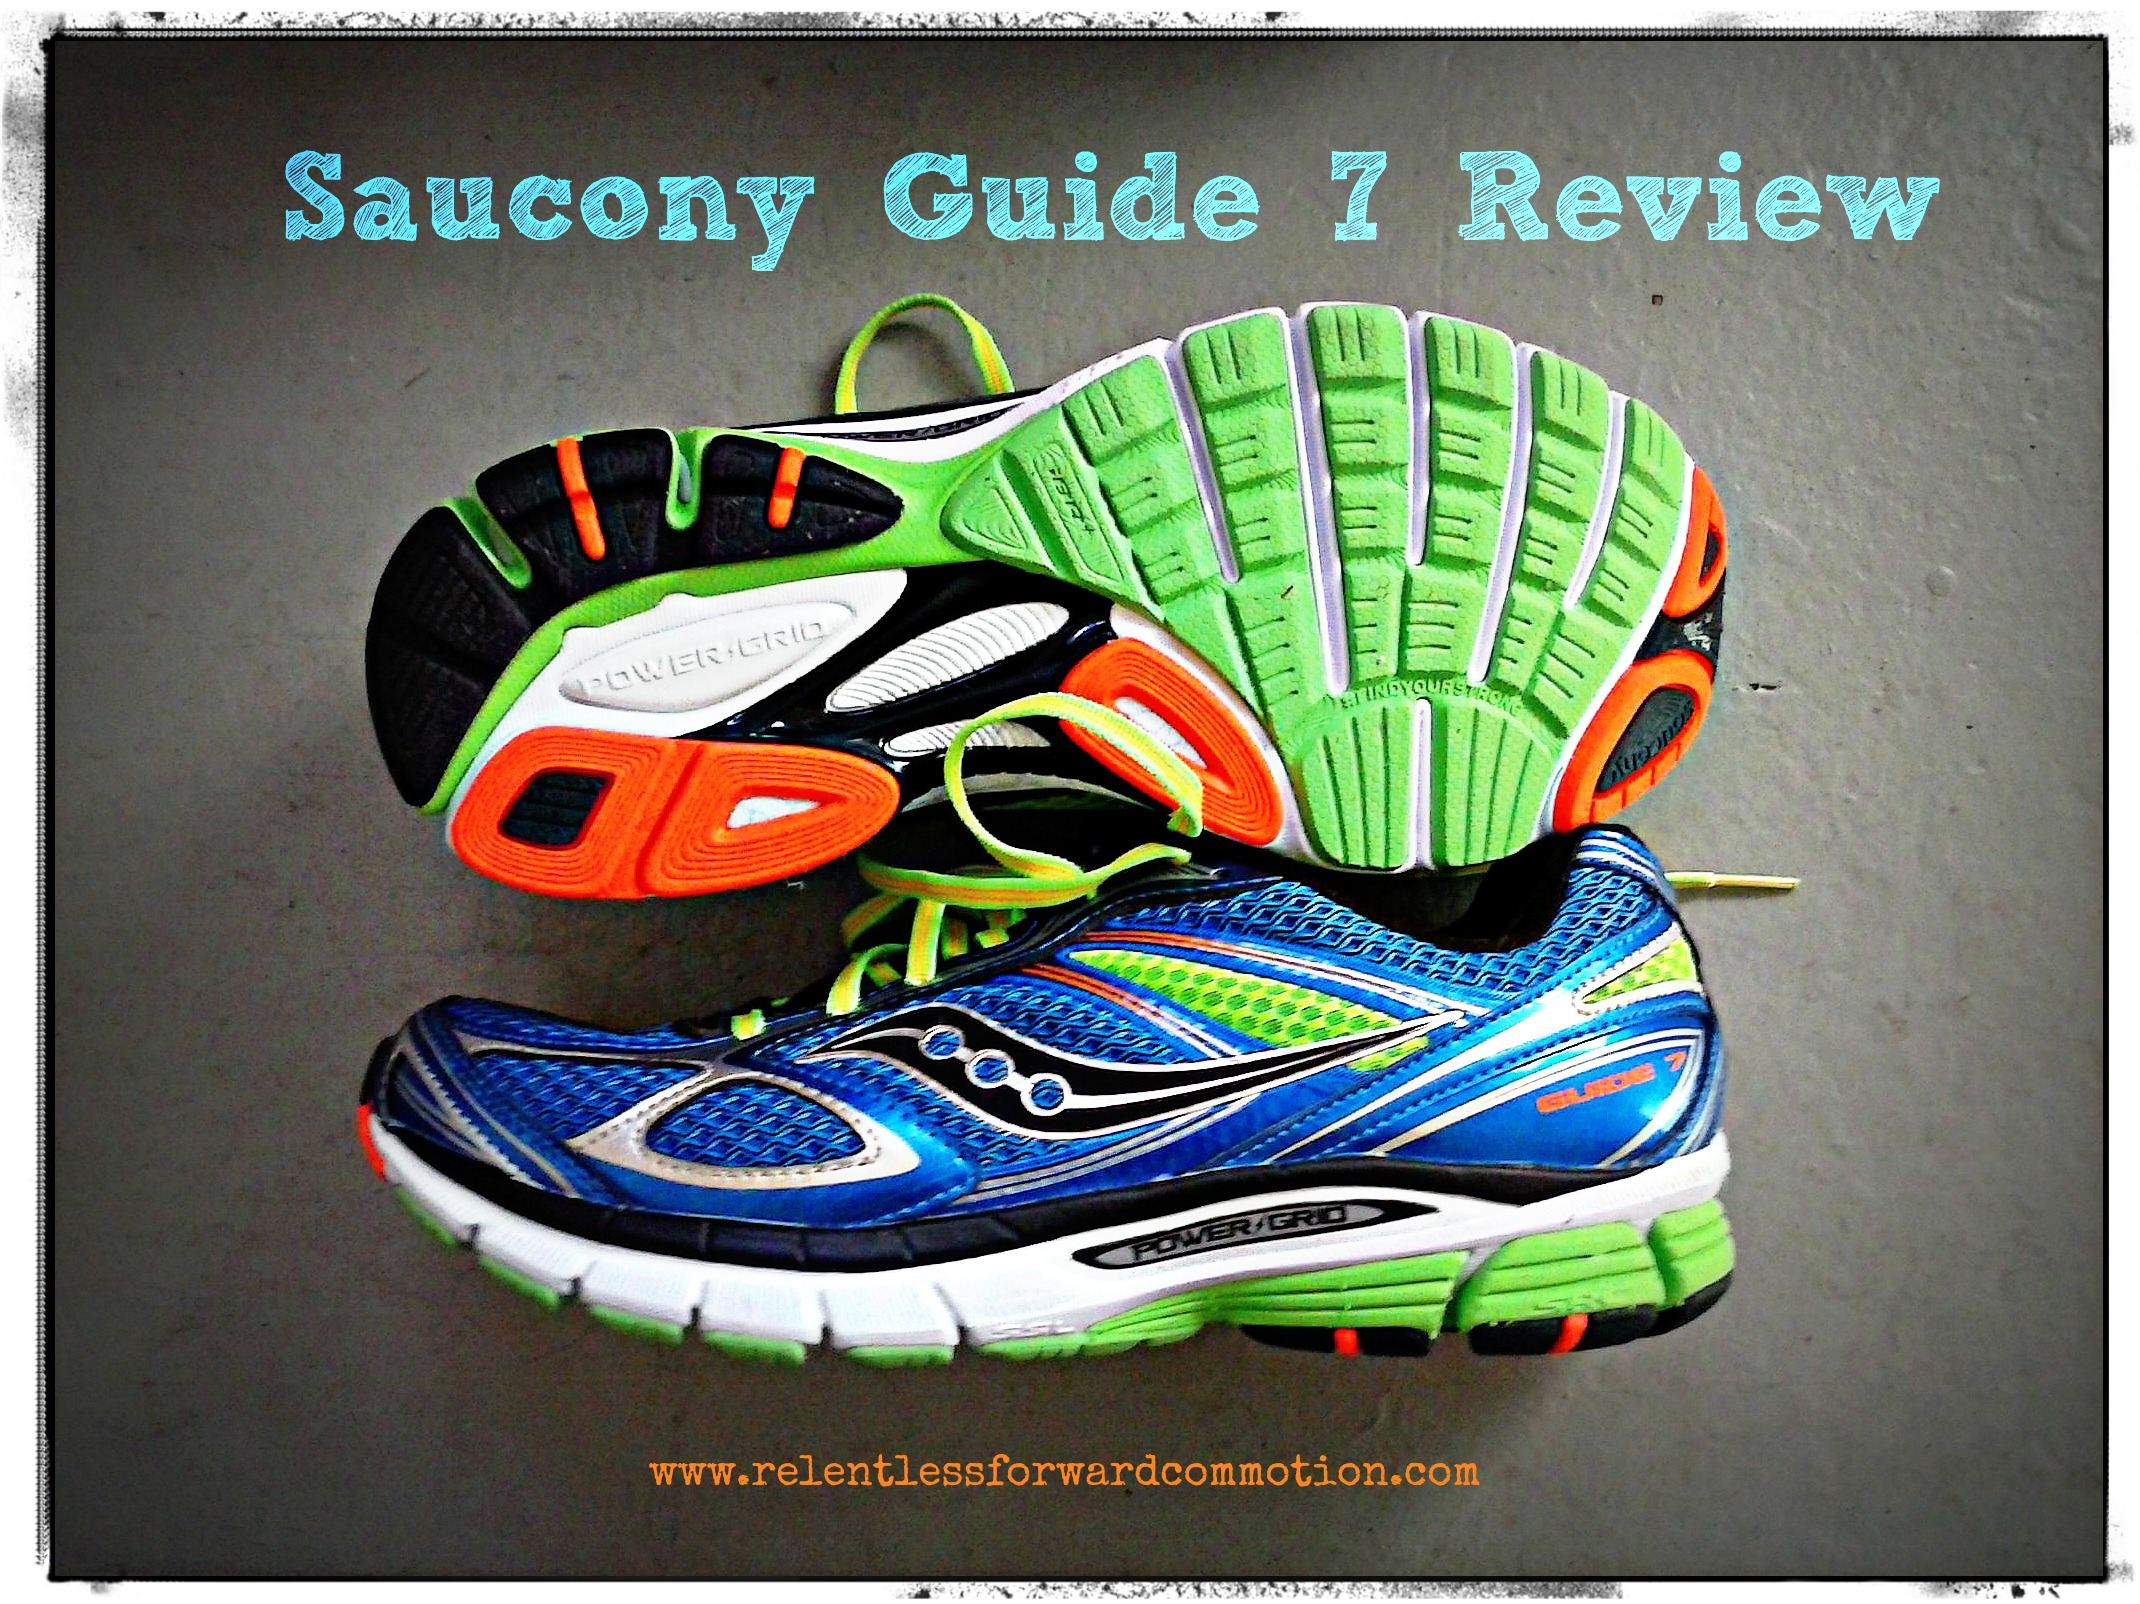 Saucony Guide 7 Review RELENTLESS FORWARD COMMOTION